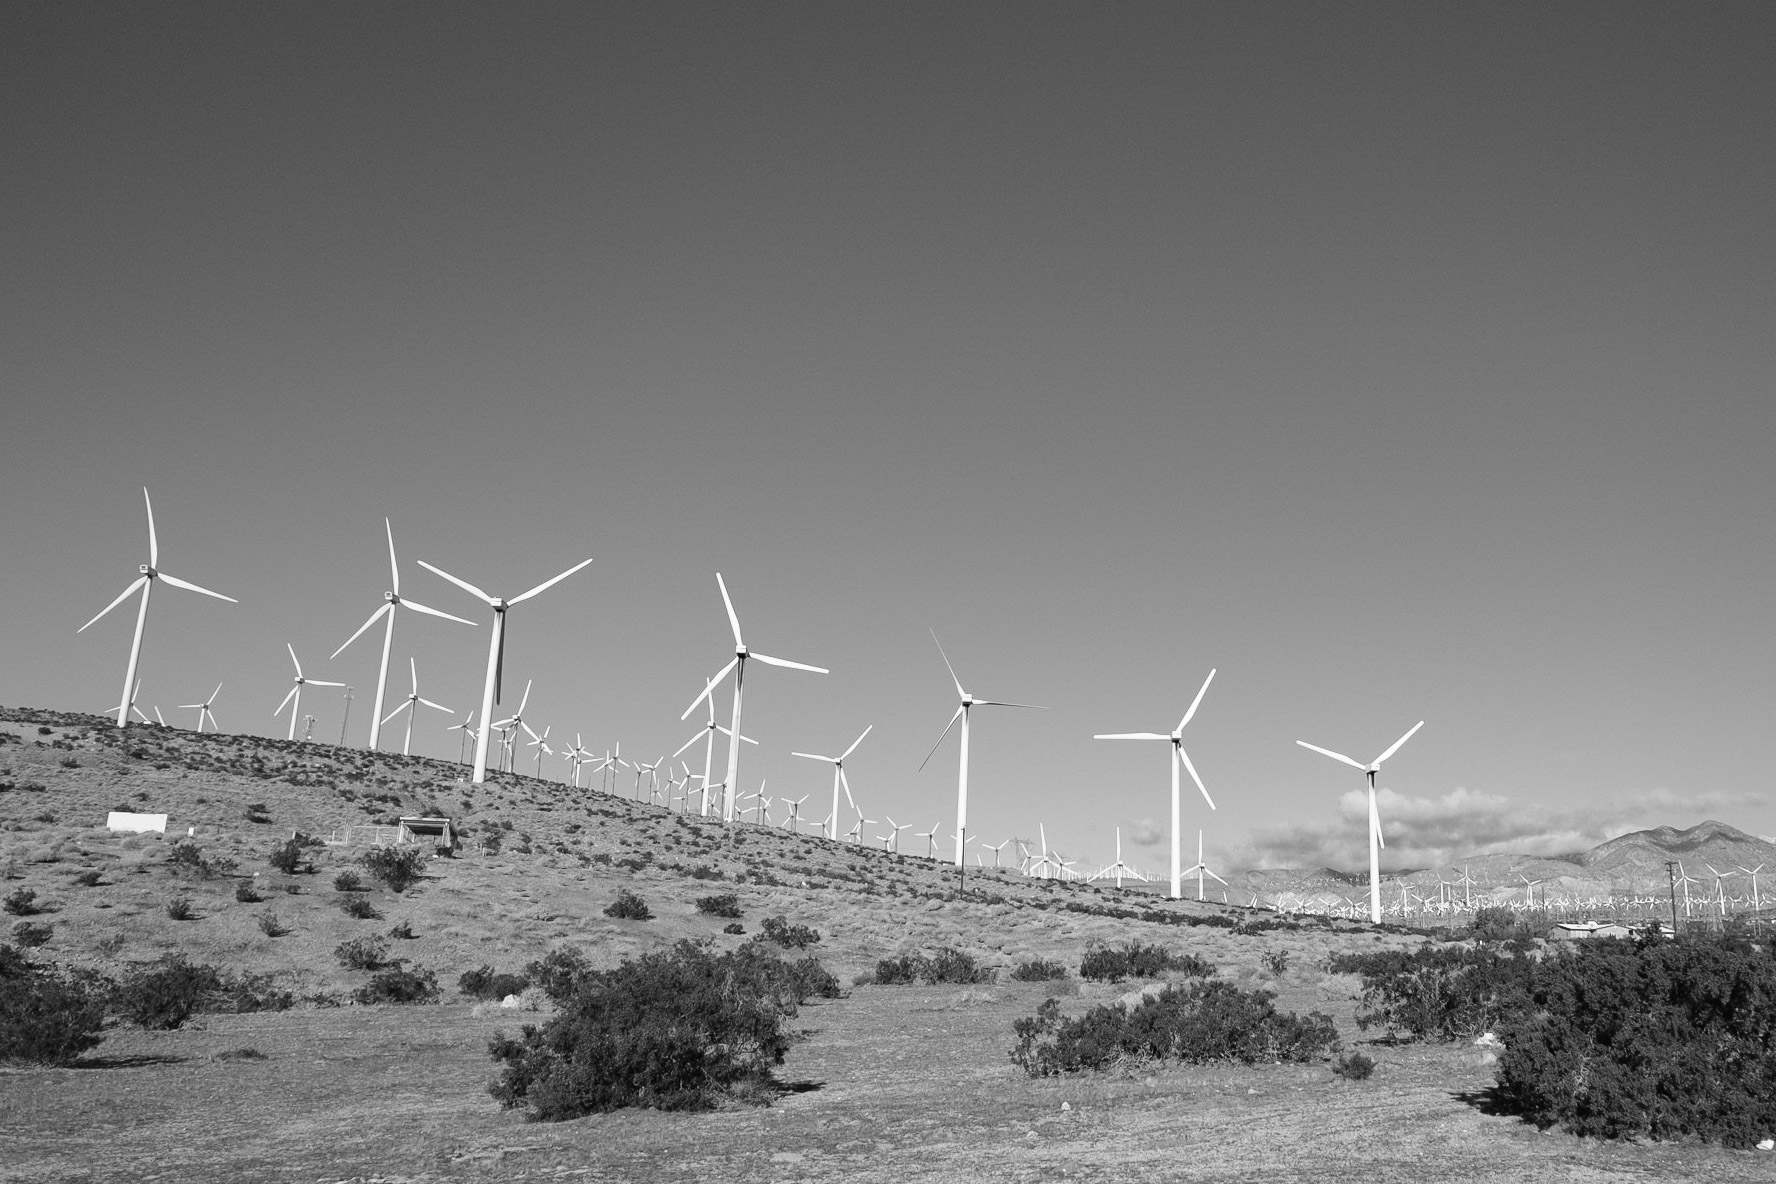 windmill-farm-palm-springs-ca-black-and-white-photography-zach-barocas